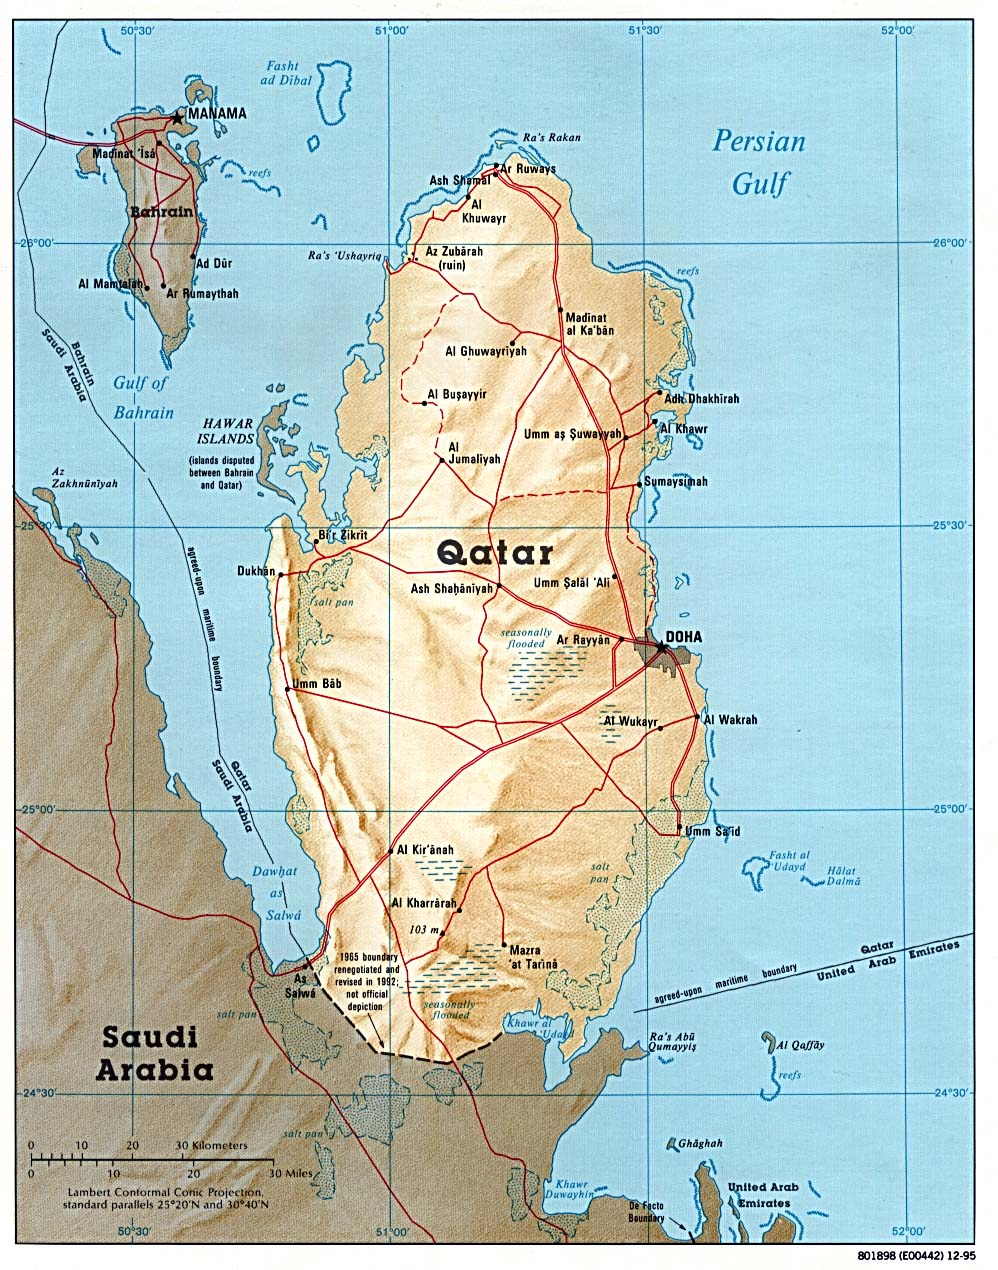 Qatar Maps - Perry-Castañeda Map Collection - UT Liry Online on